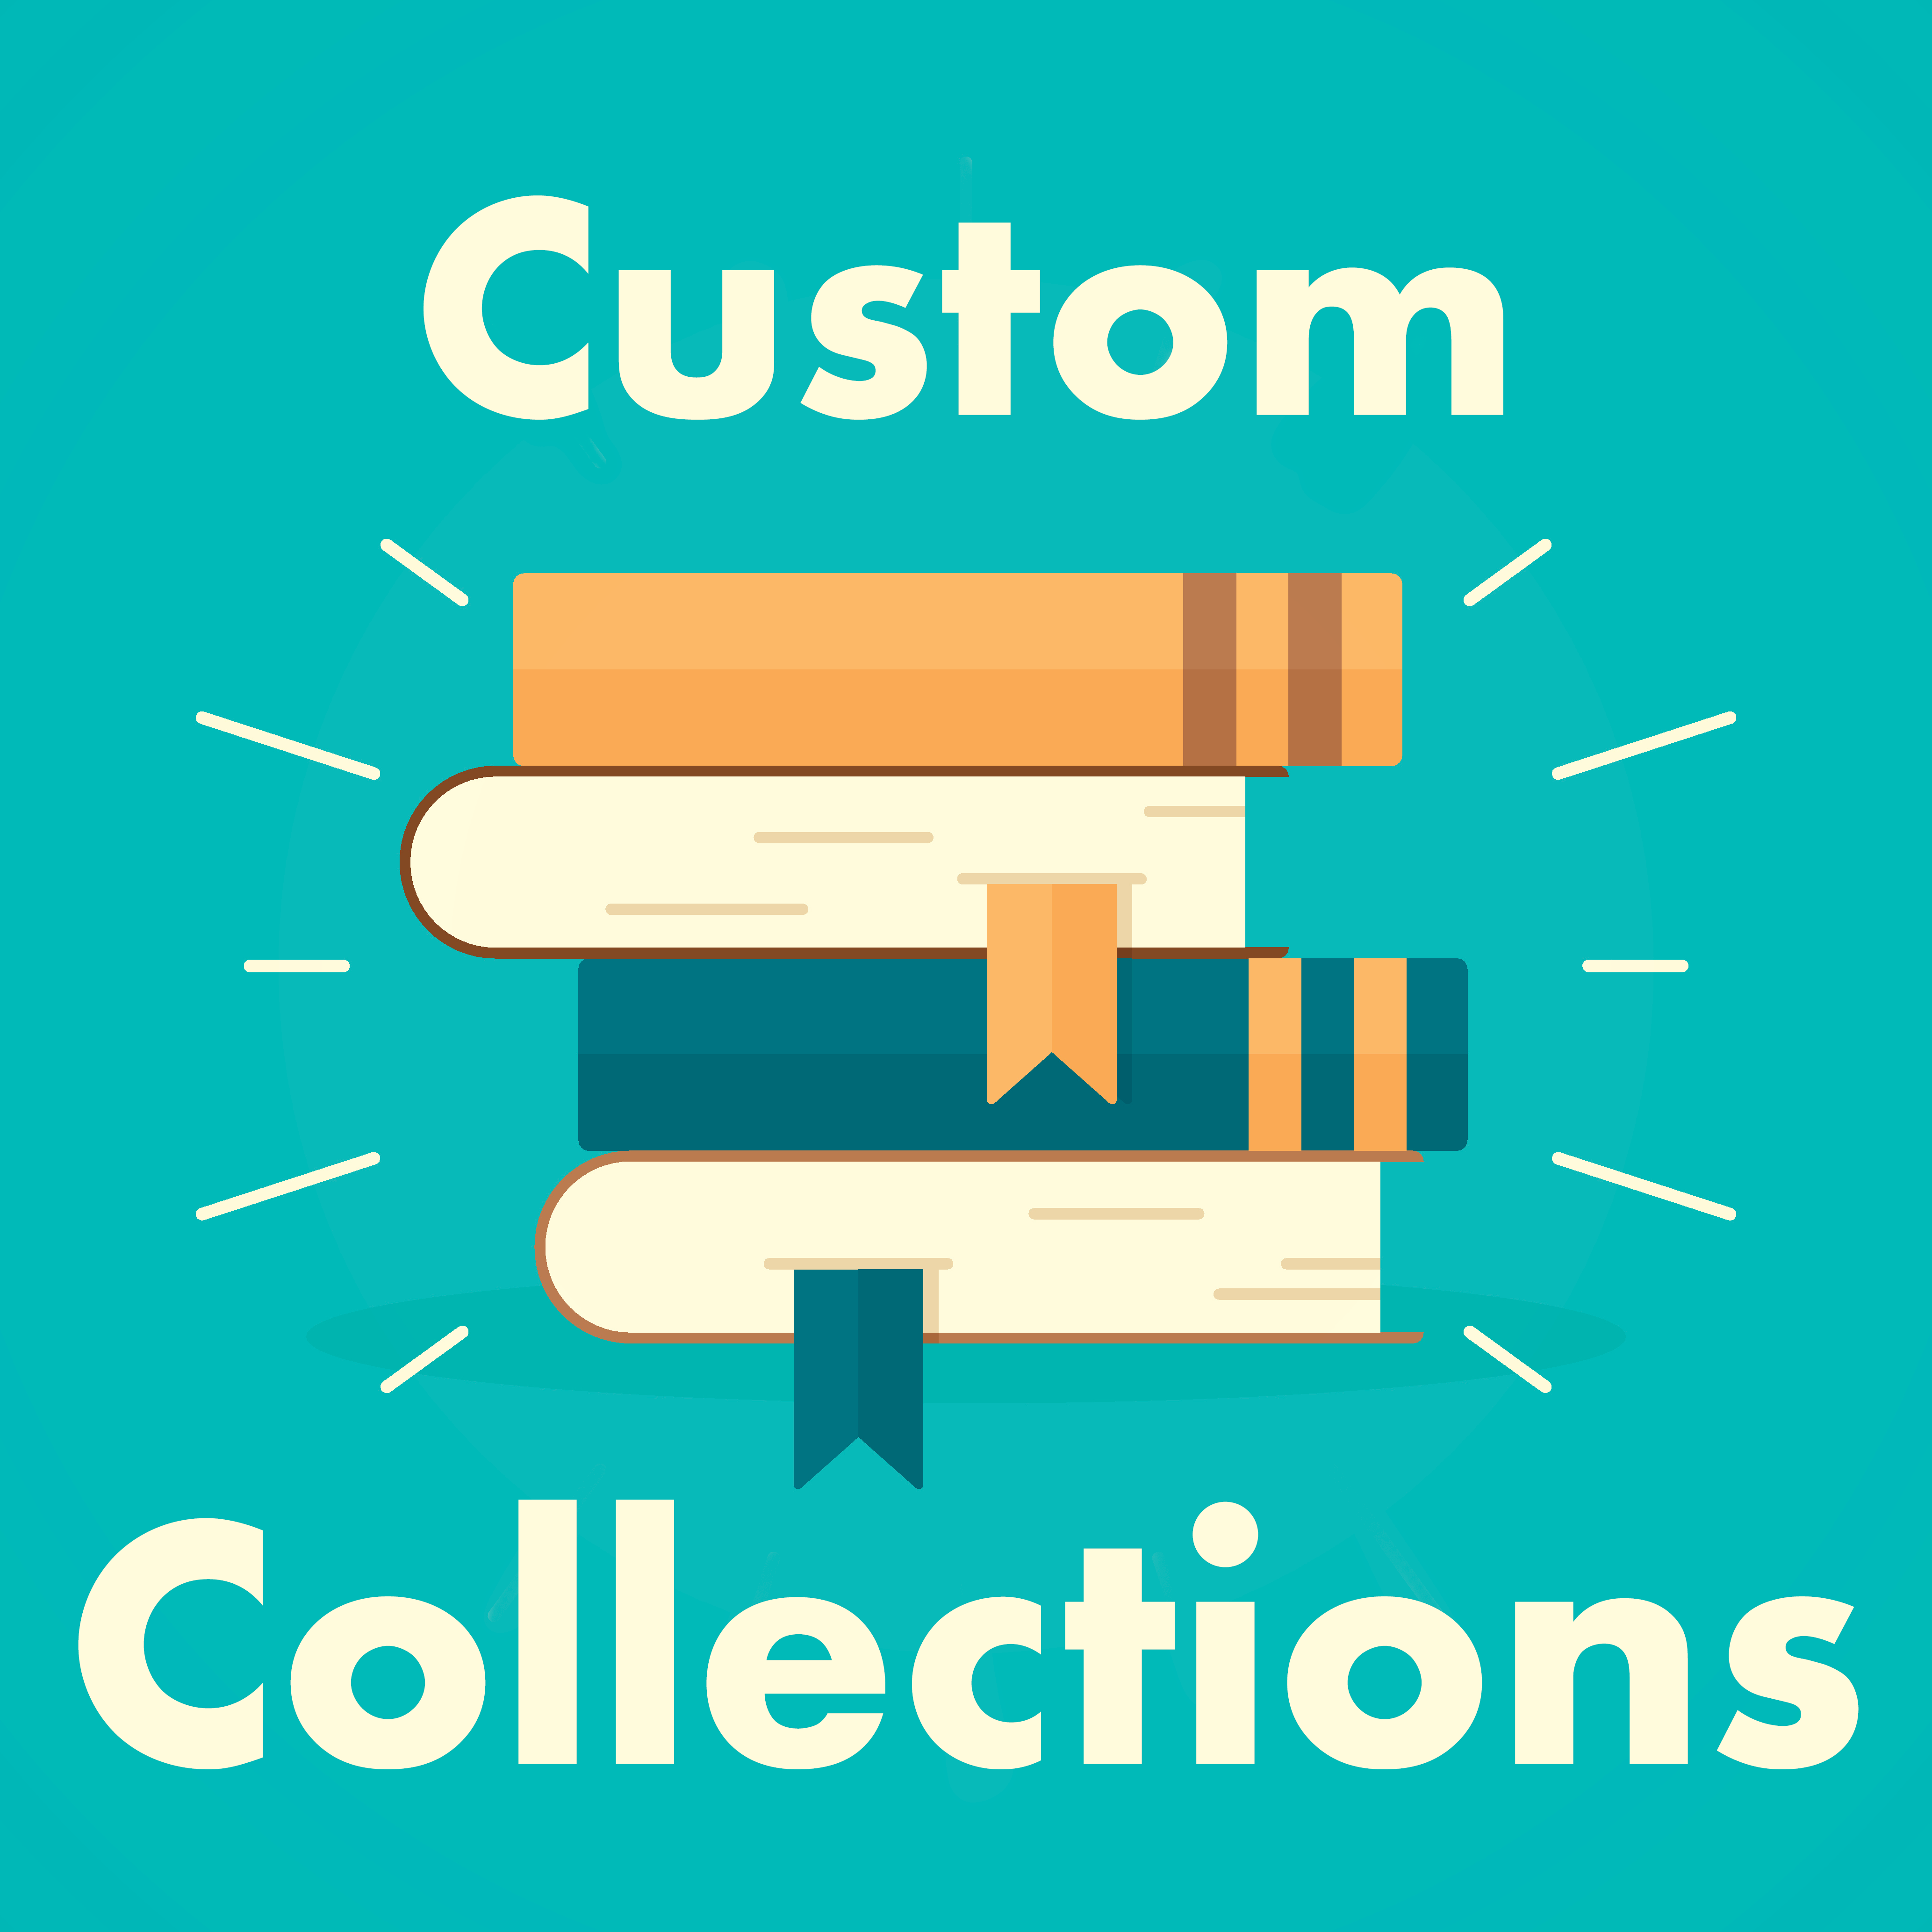 Custom Collections